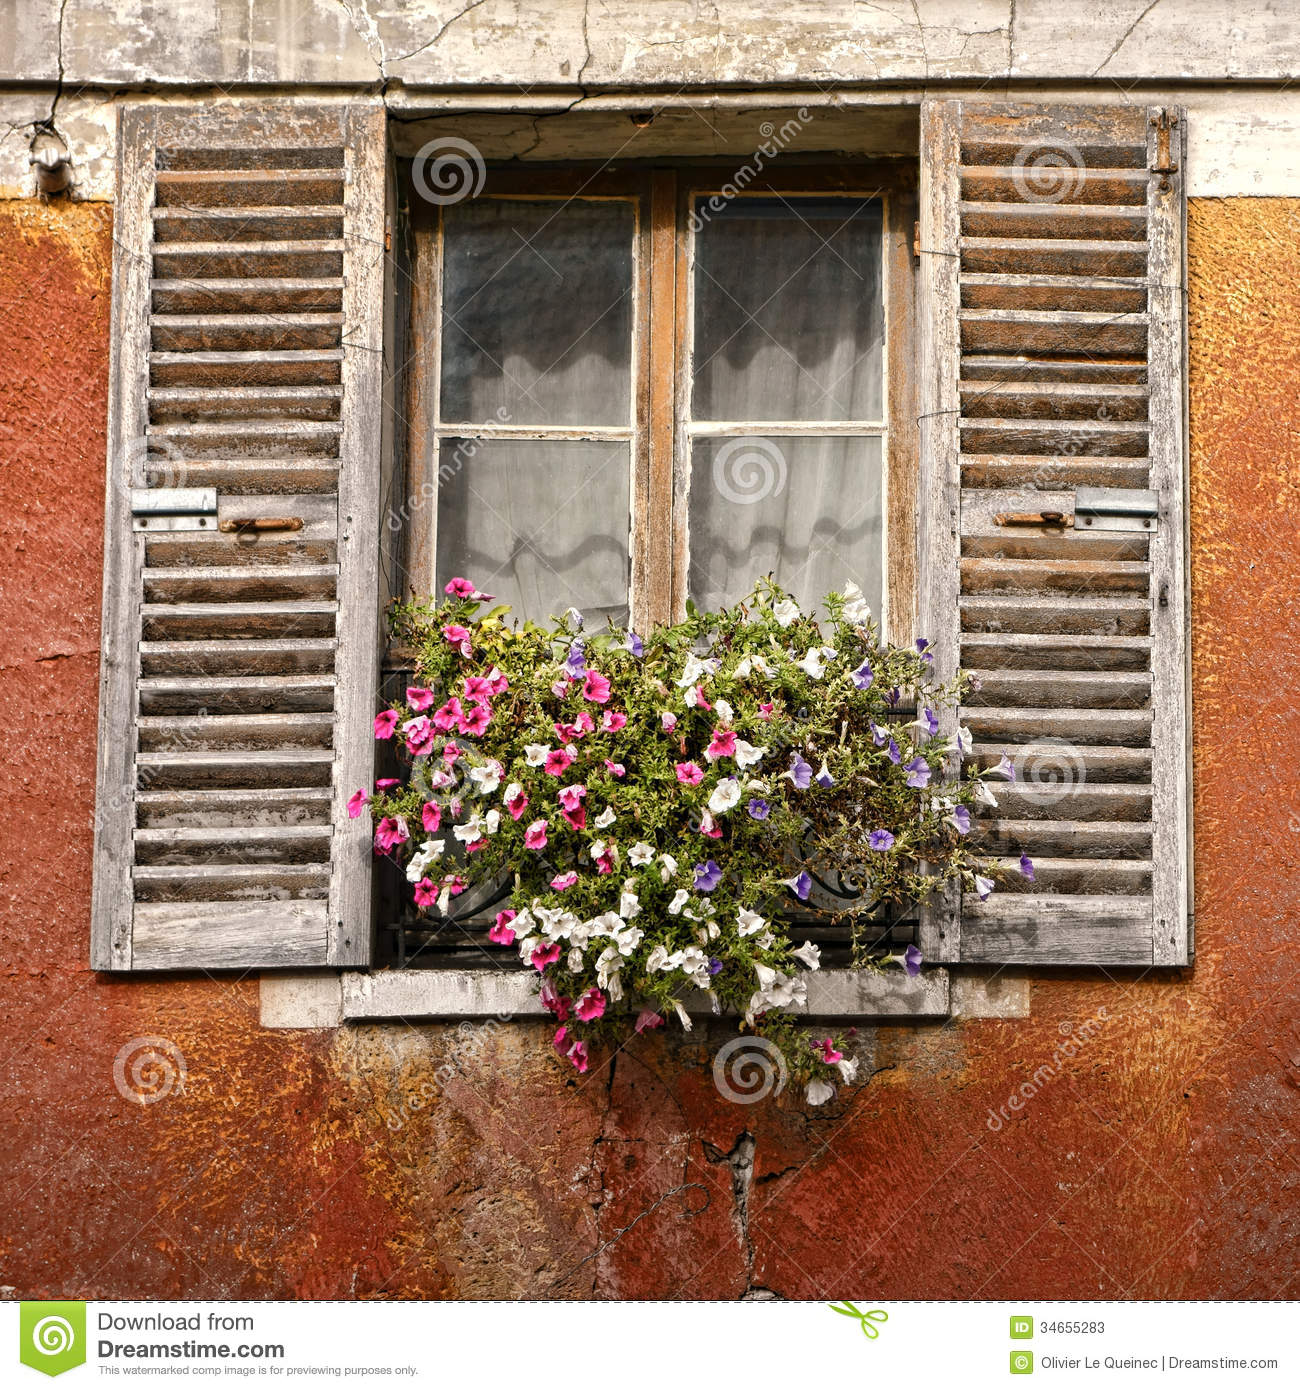 Old House Window with Flowers and Antique Shutters